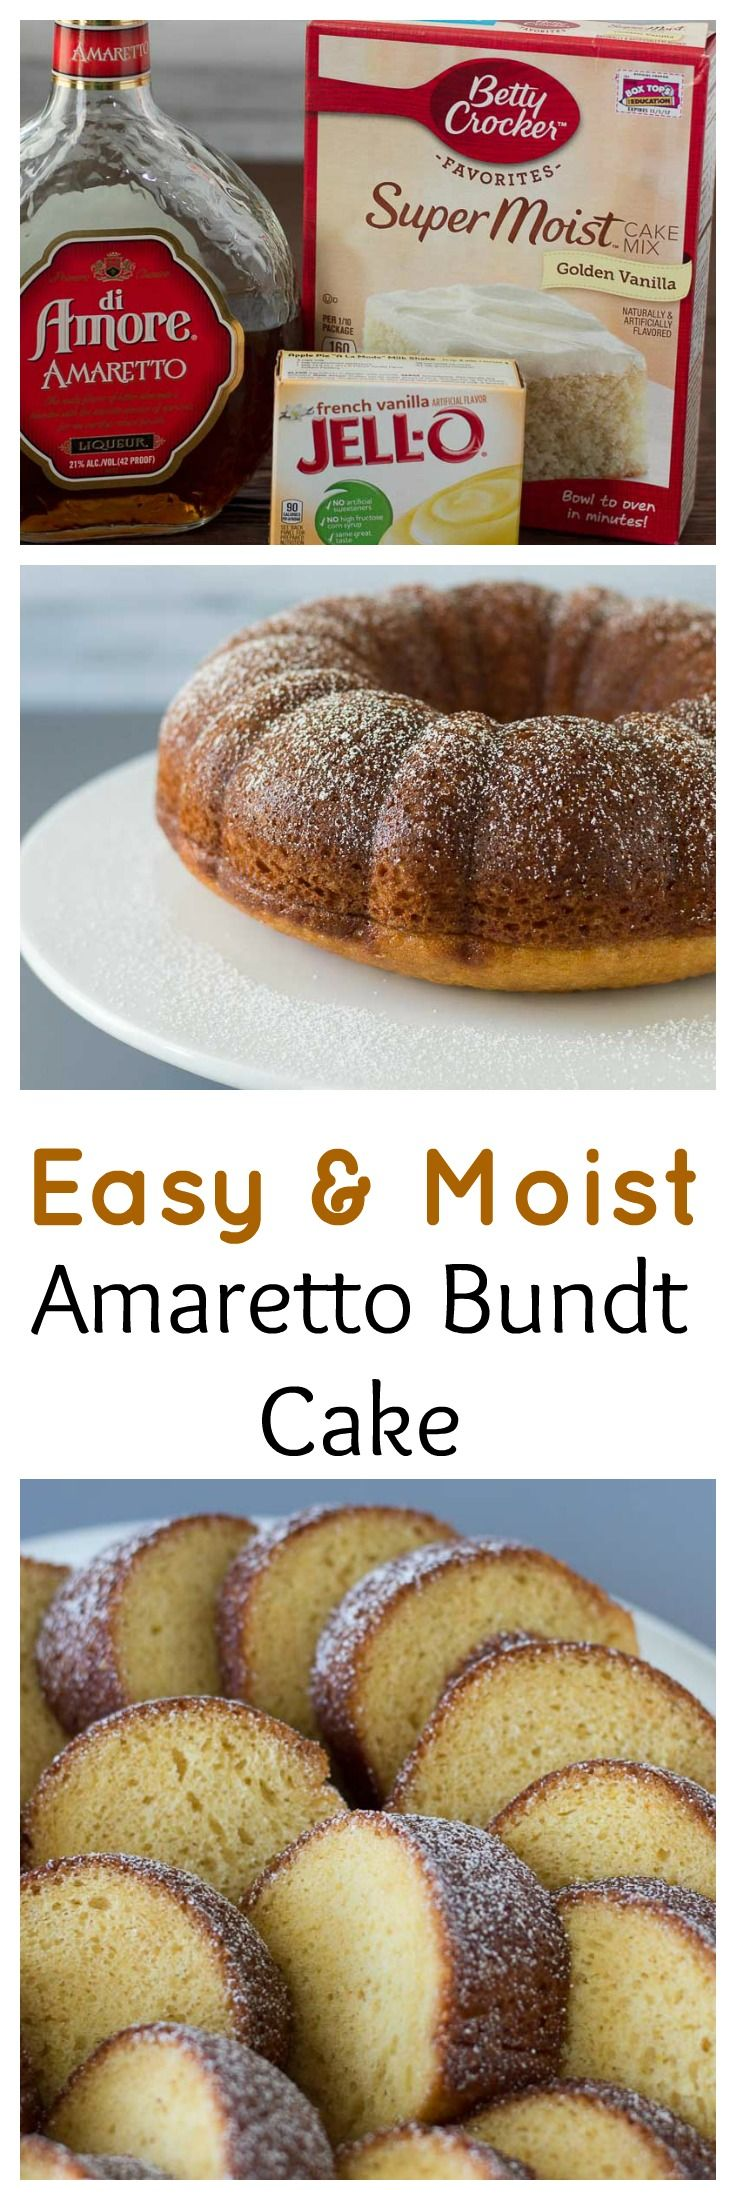 Easy and moist Amaretto Bundt Cake with a Buttery Amaretto Glaze. Great for the beginner cook.